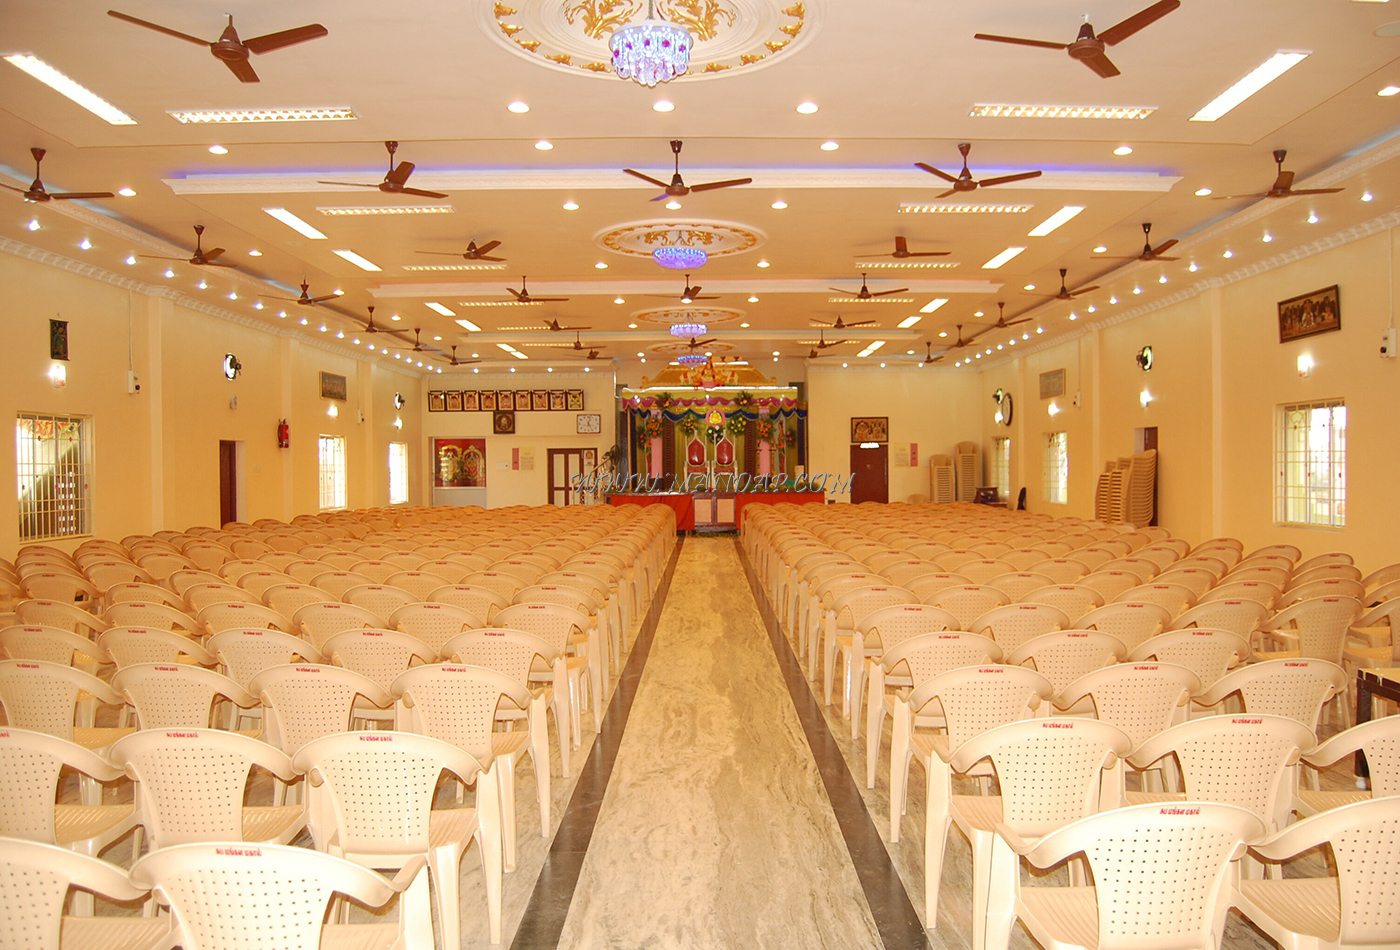 Find the availability of the Suba Mangala Mahal (A/C) in Thavalakuppam, Pondicherry and avail special offers